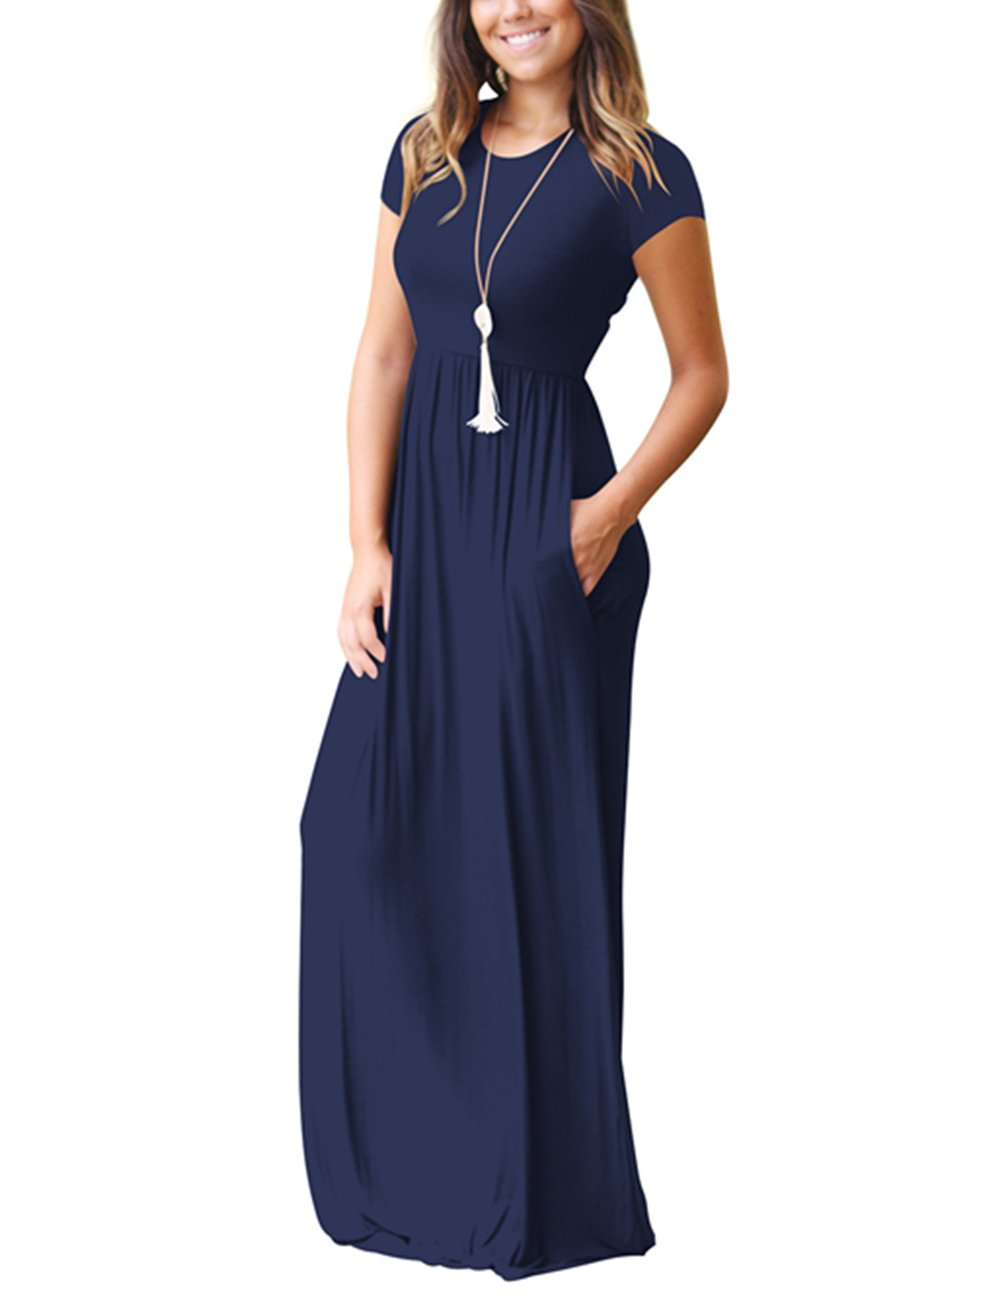 ORQ Women's Short Sleeve Loose Plain Casual Long Maxi Tunic Dress With Pockets by ORQ (Image #2)